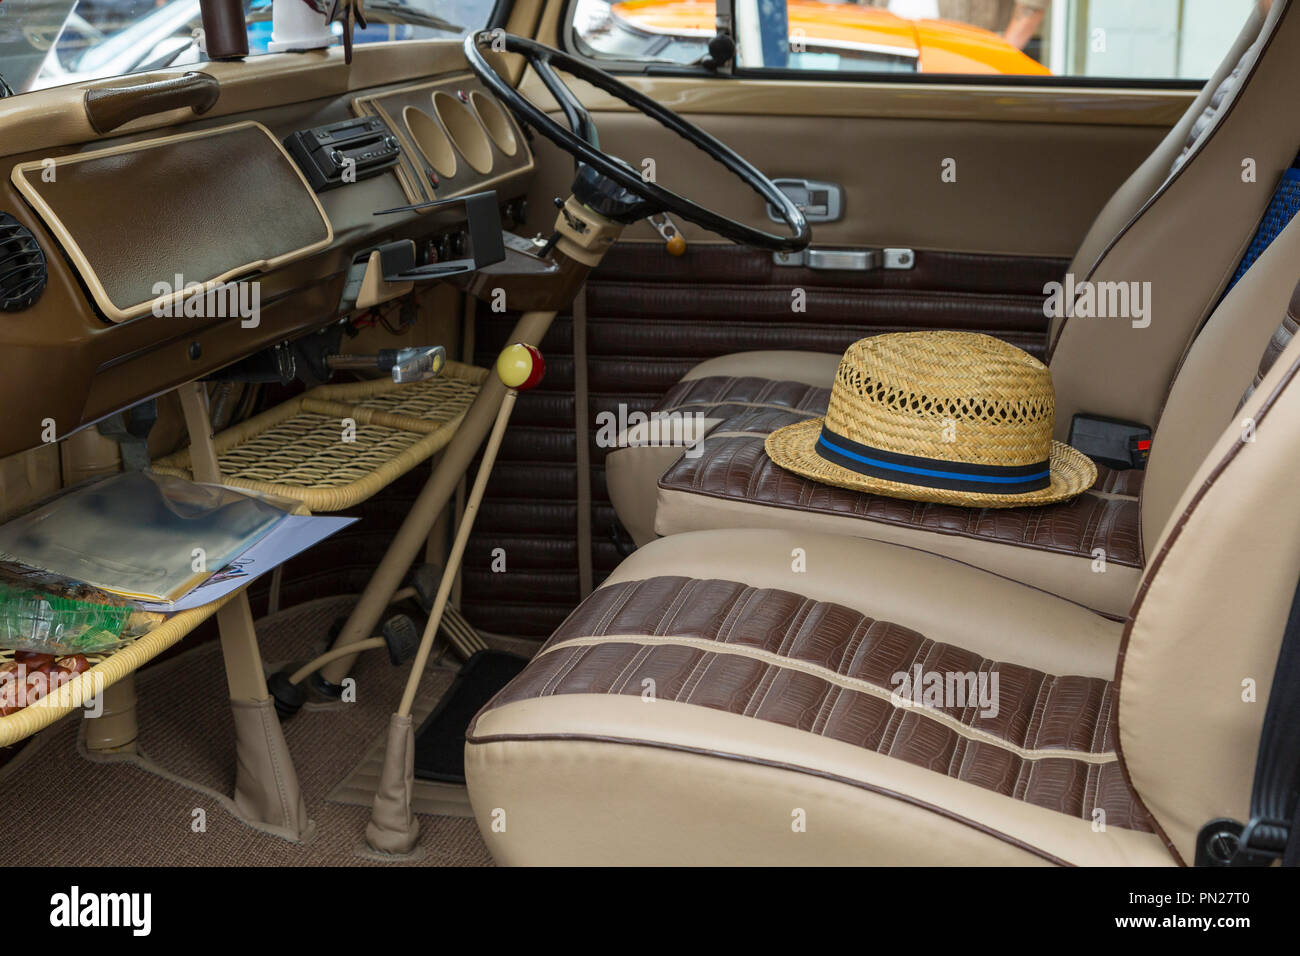 Interior of an early VW Camper. - Stock Image